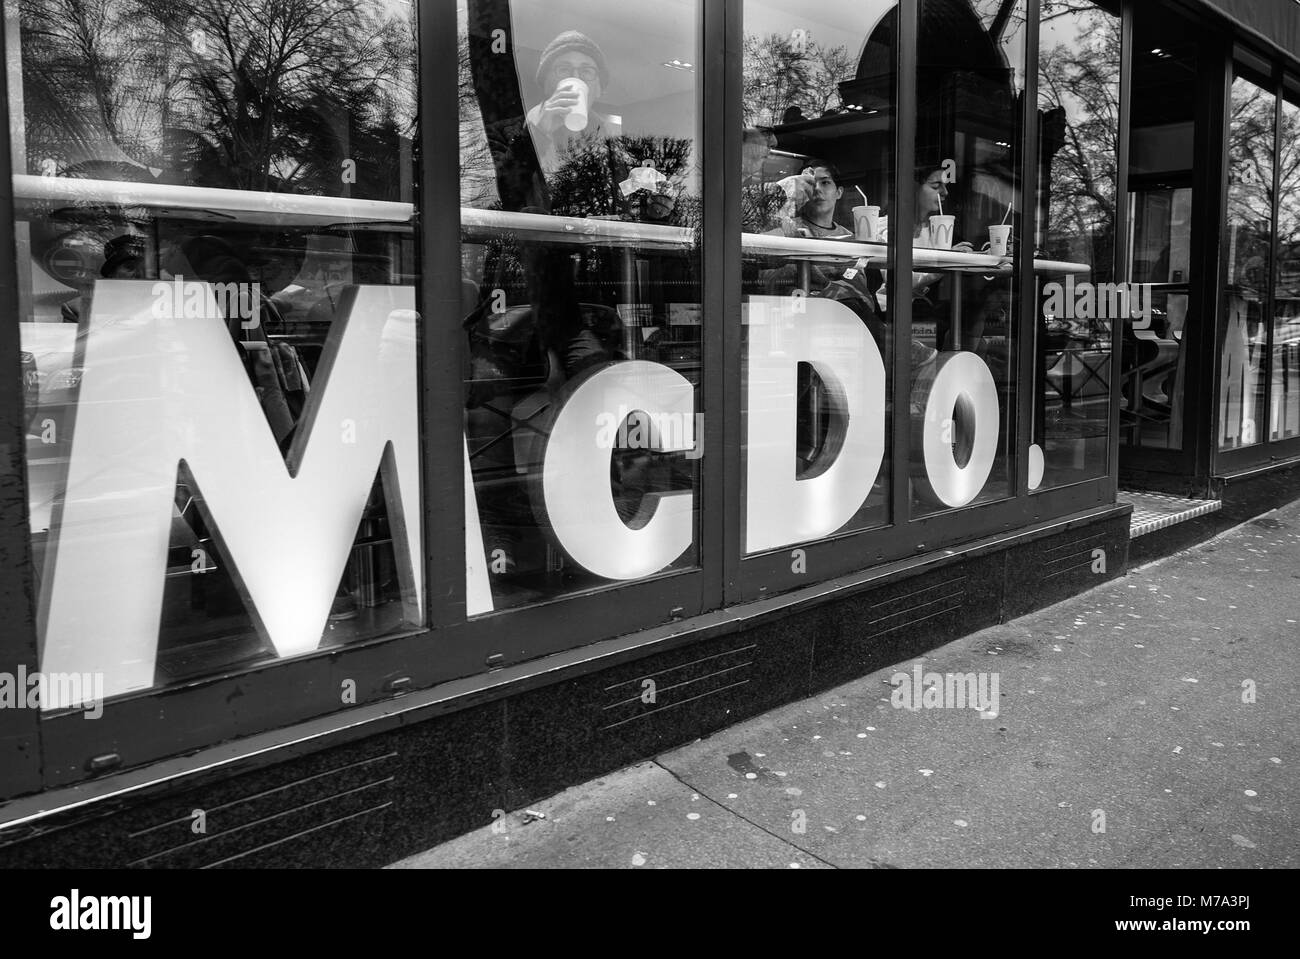 Paris, France - January 7, 2018: Typical glass facade of a fast food restaurant in the center of Paris. - Stock Image